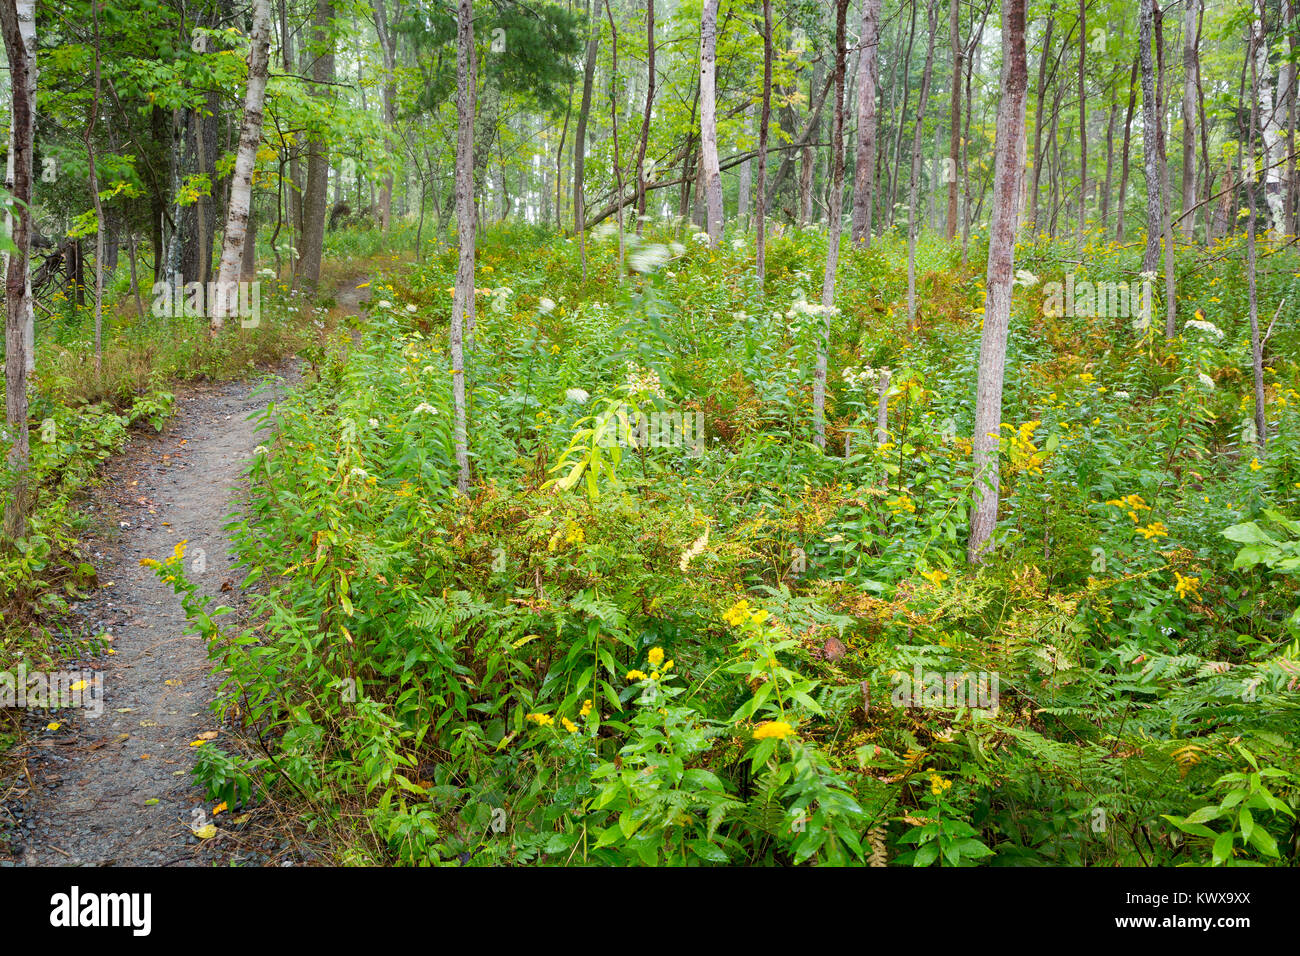 The Otter Cove Trail ascending a small rise through ground brush and forest. Acadia National Park, Maine Stock Photo